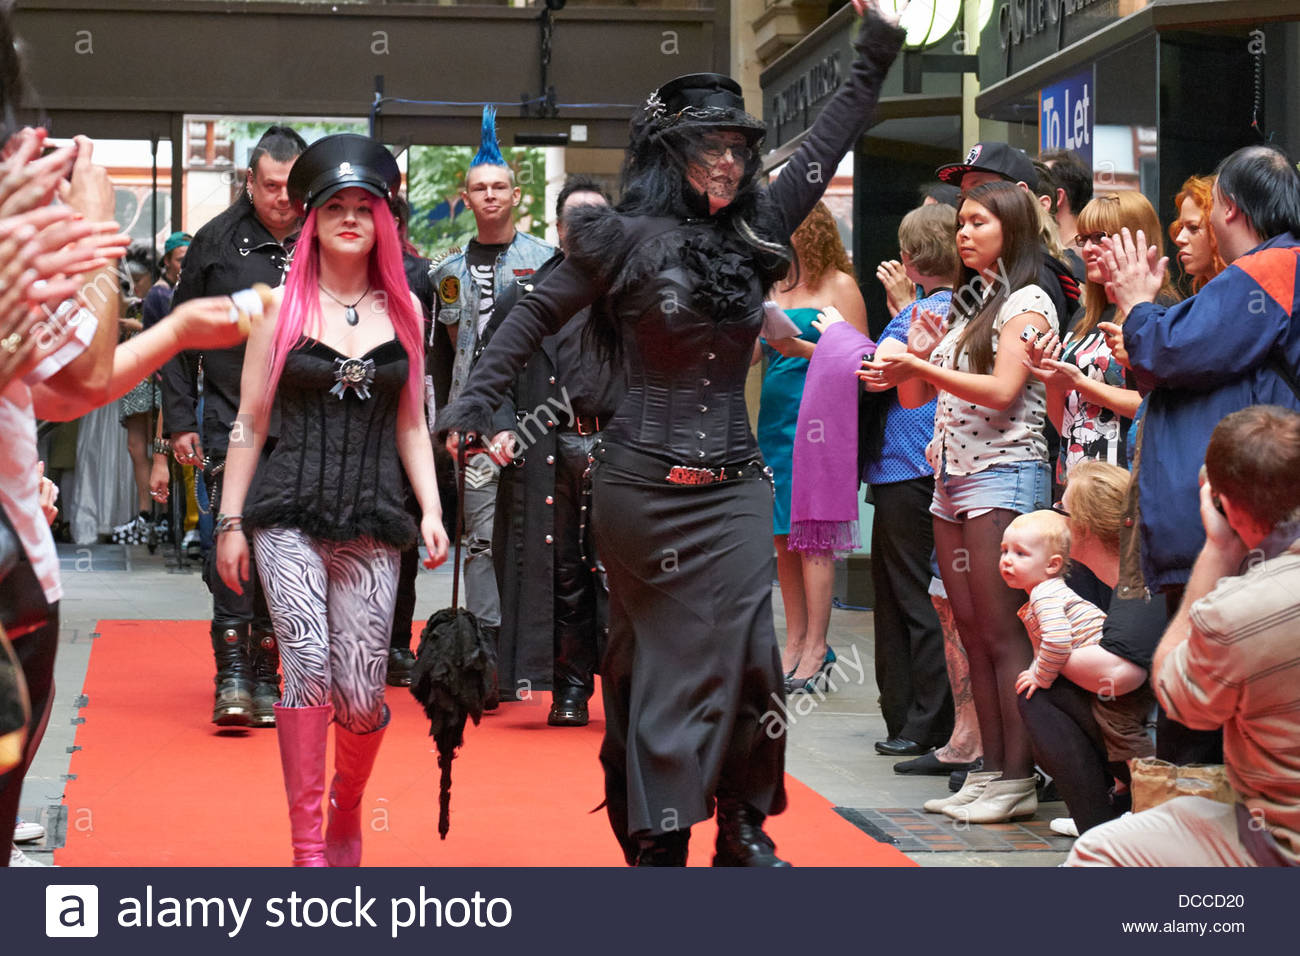 Staff of Deviant Angel Not a Fashion Show in aid of NYAS - Stock Image